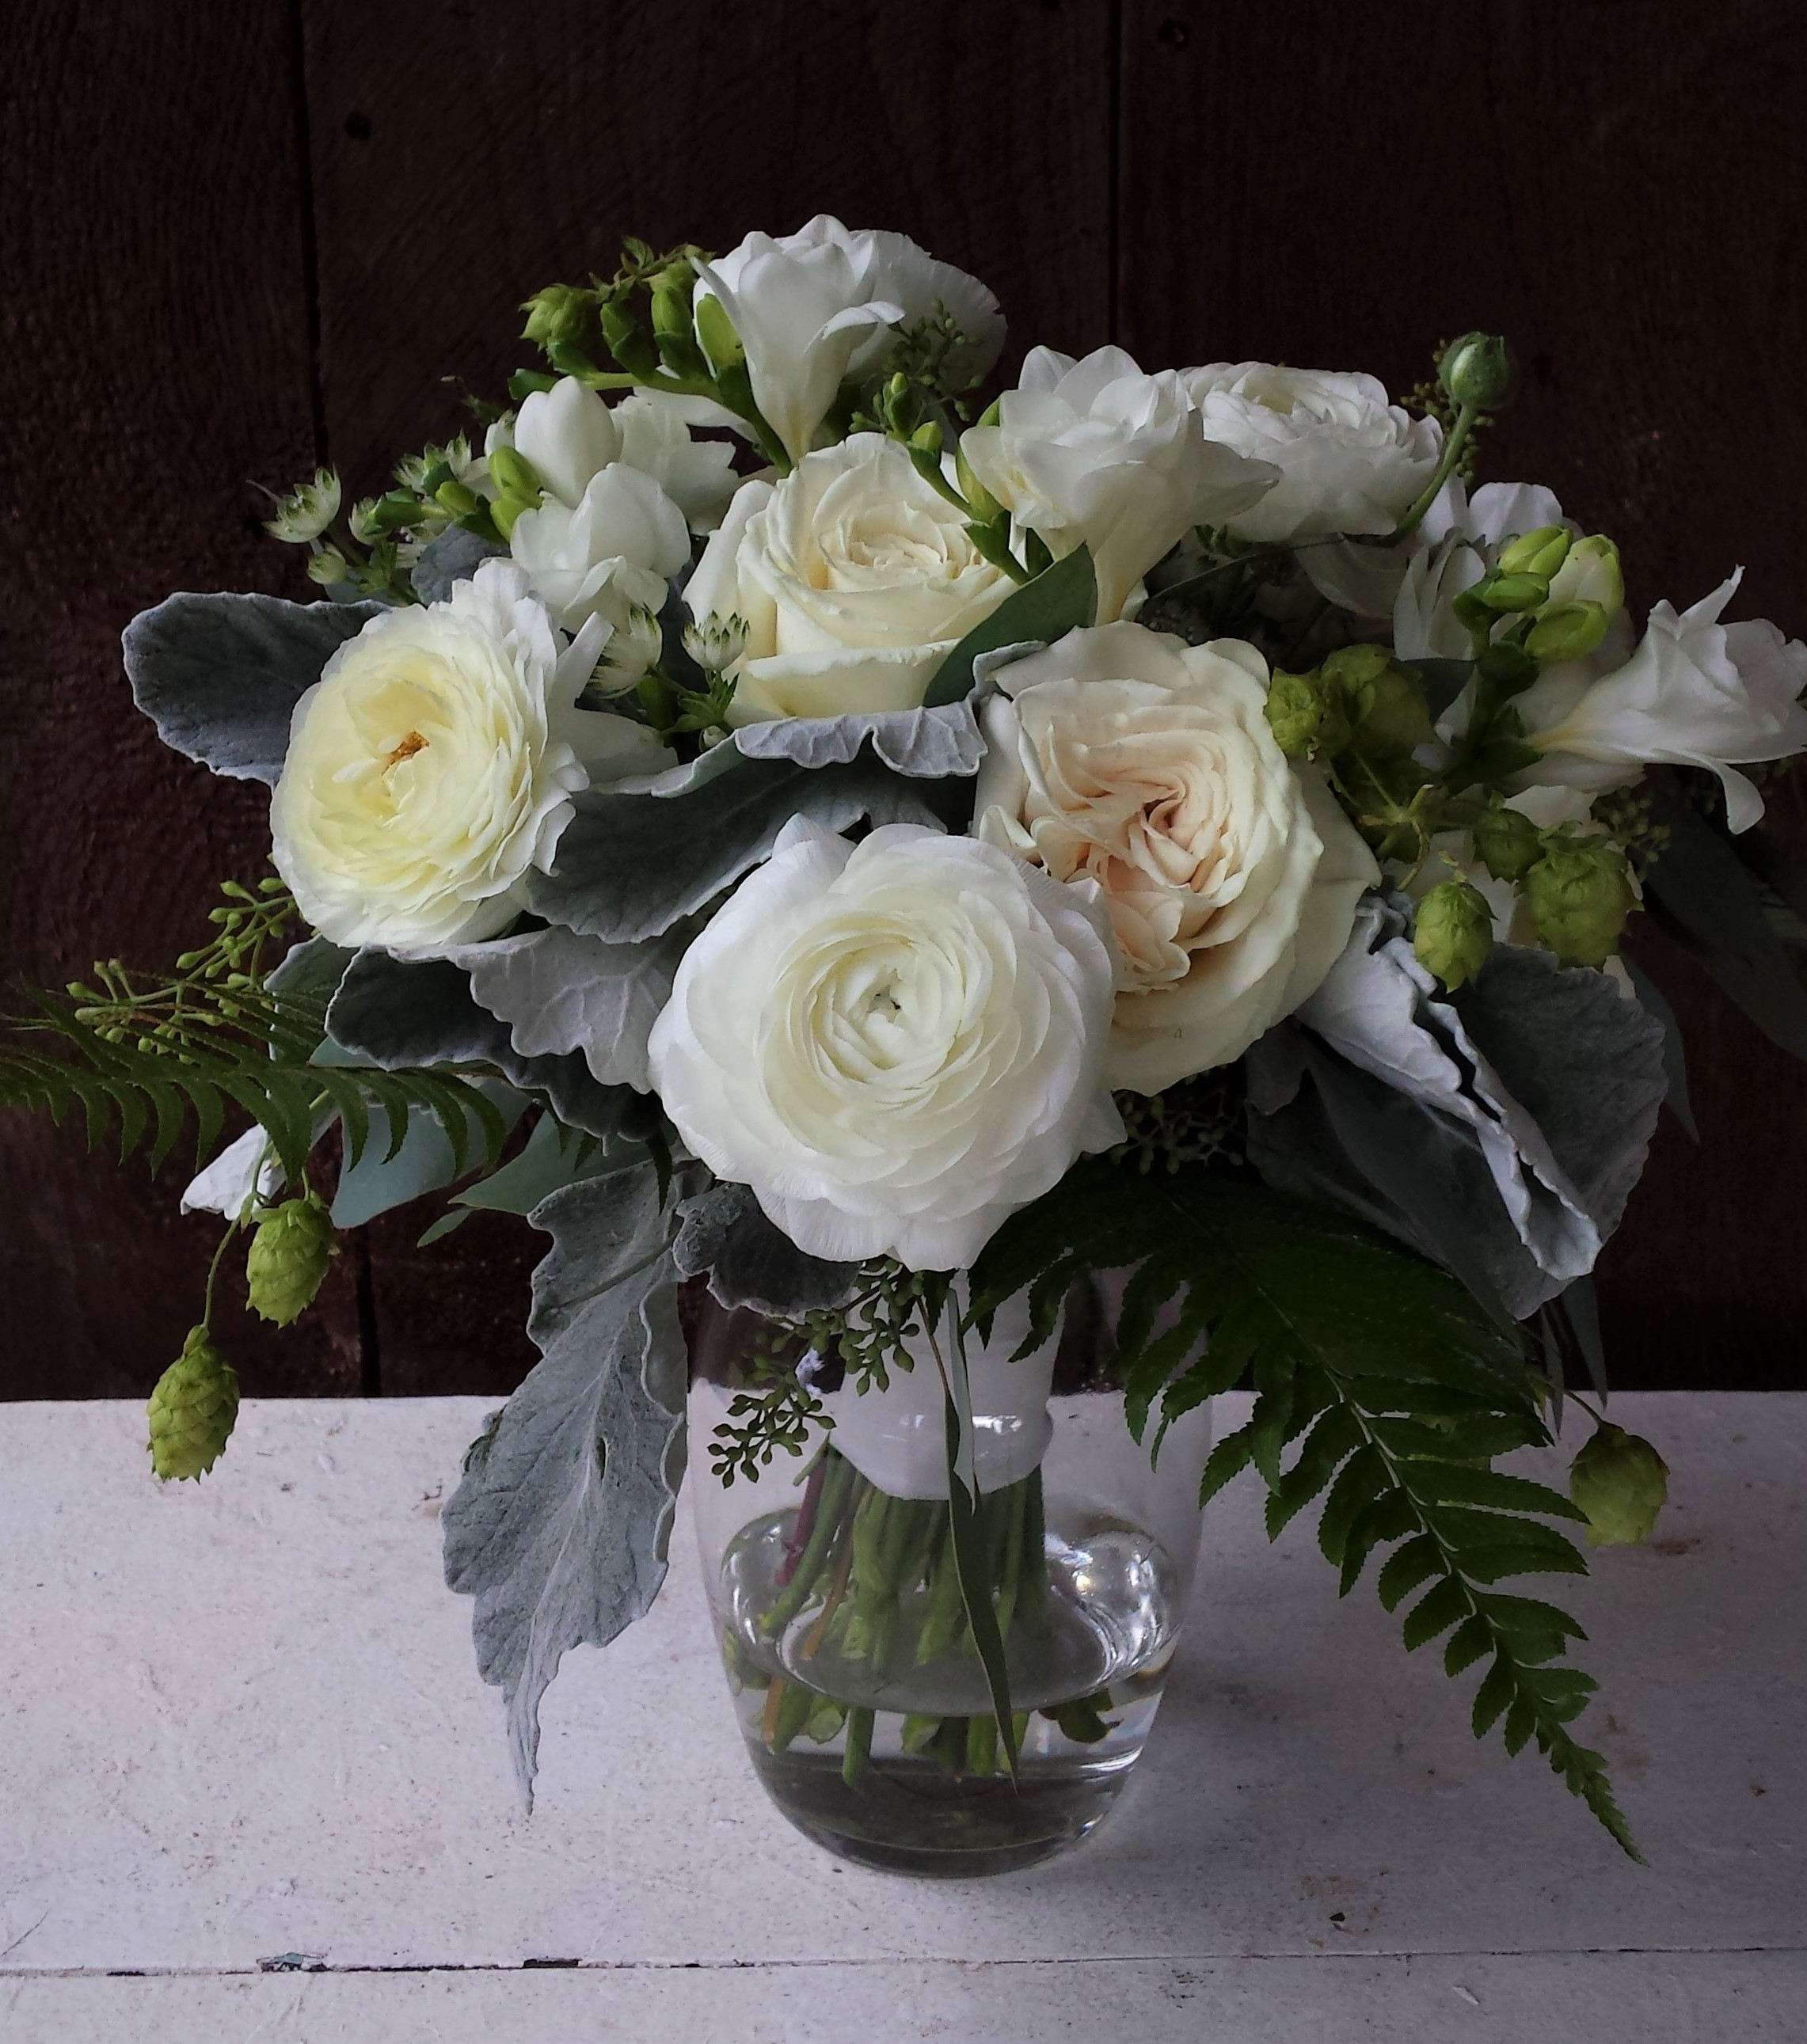 Classic white and green wedding bouquet